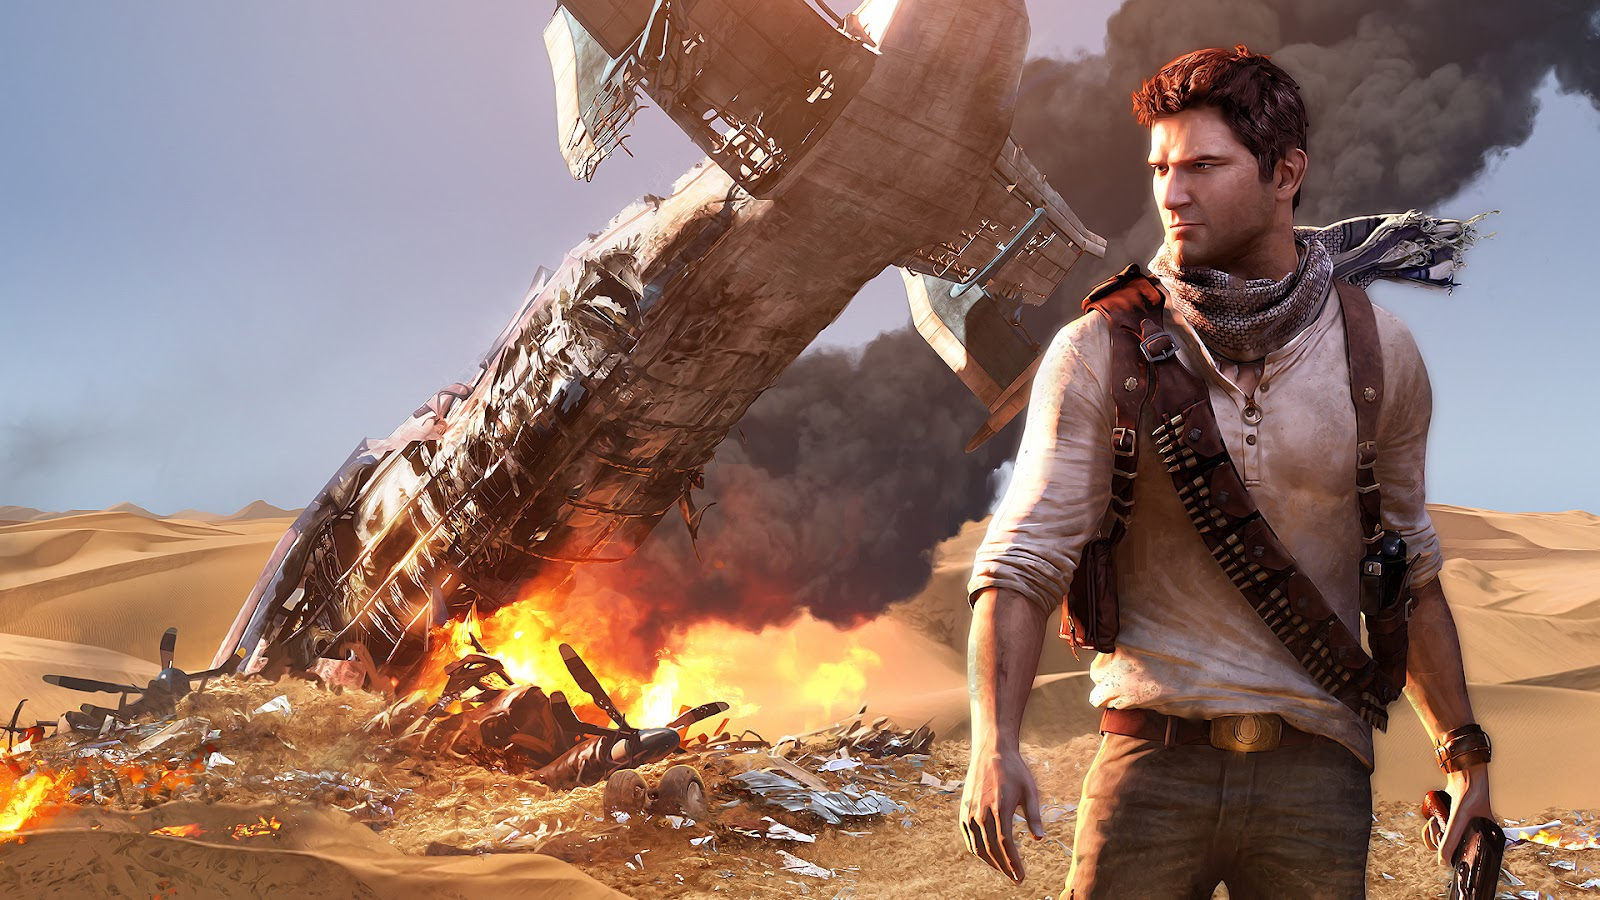 wallpapers2 Uncharted 3 Drakes Deception Wallpapers in HD 1080p 1600x900